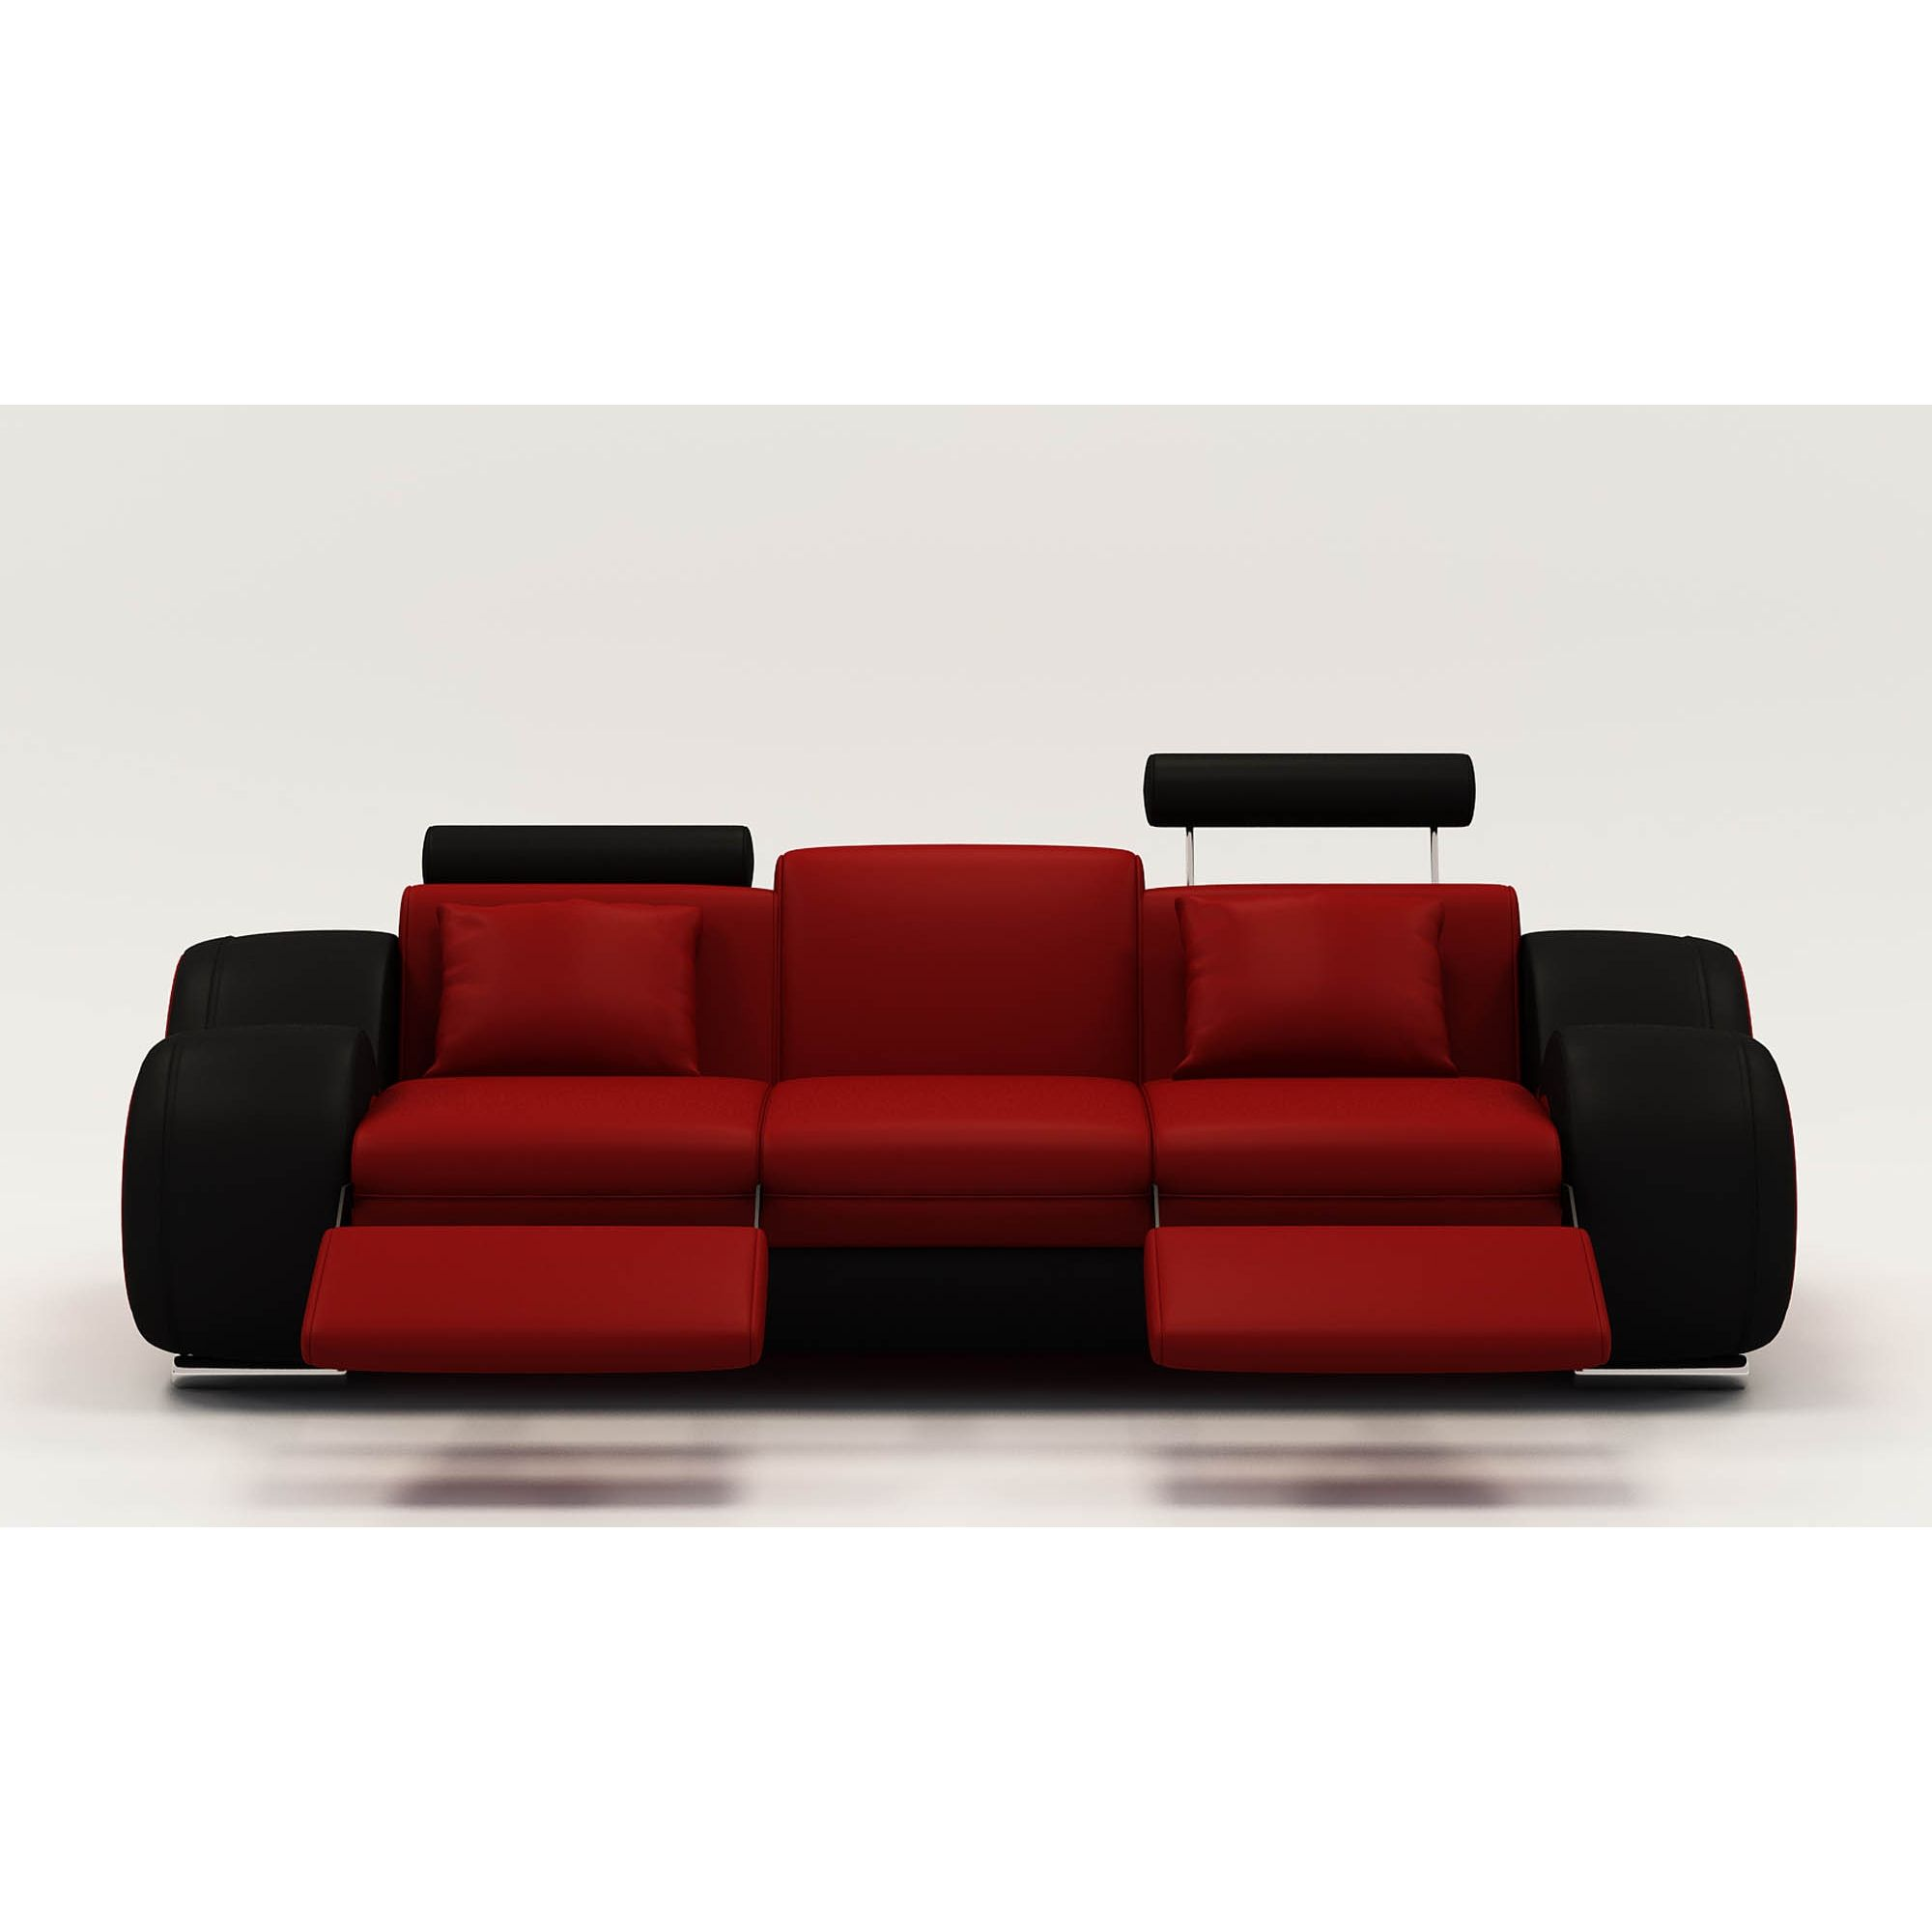 Deco in paris 7 canape design 3 places cuir rouge et noir tetieres relax oslo can 3p oslo pu - Canape design et confortable ...